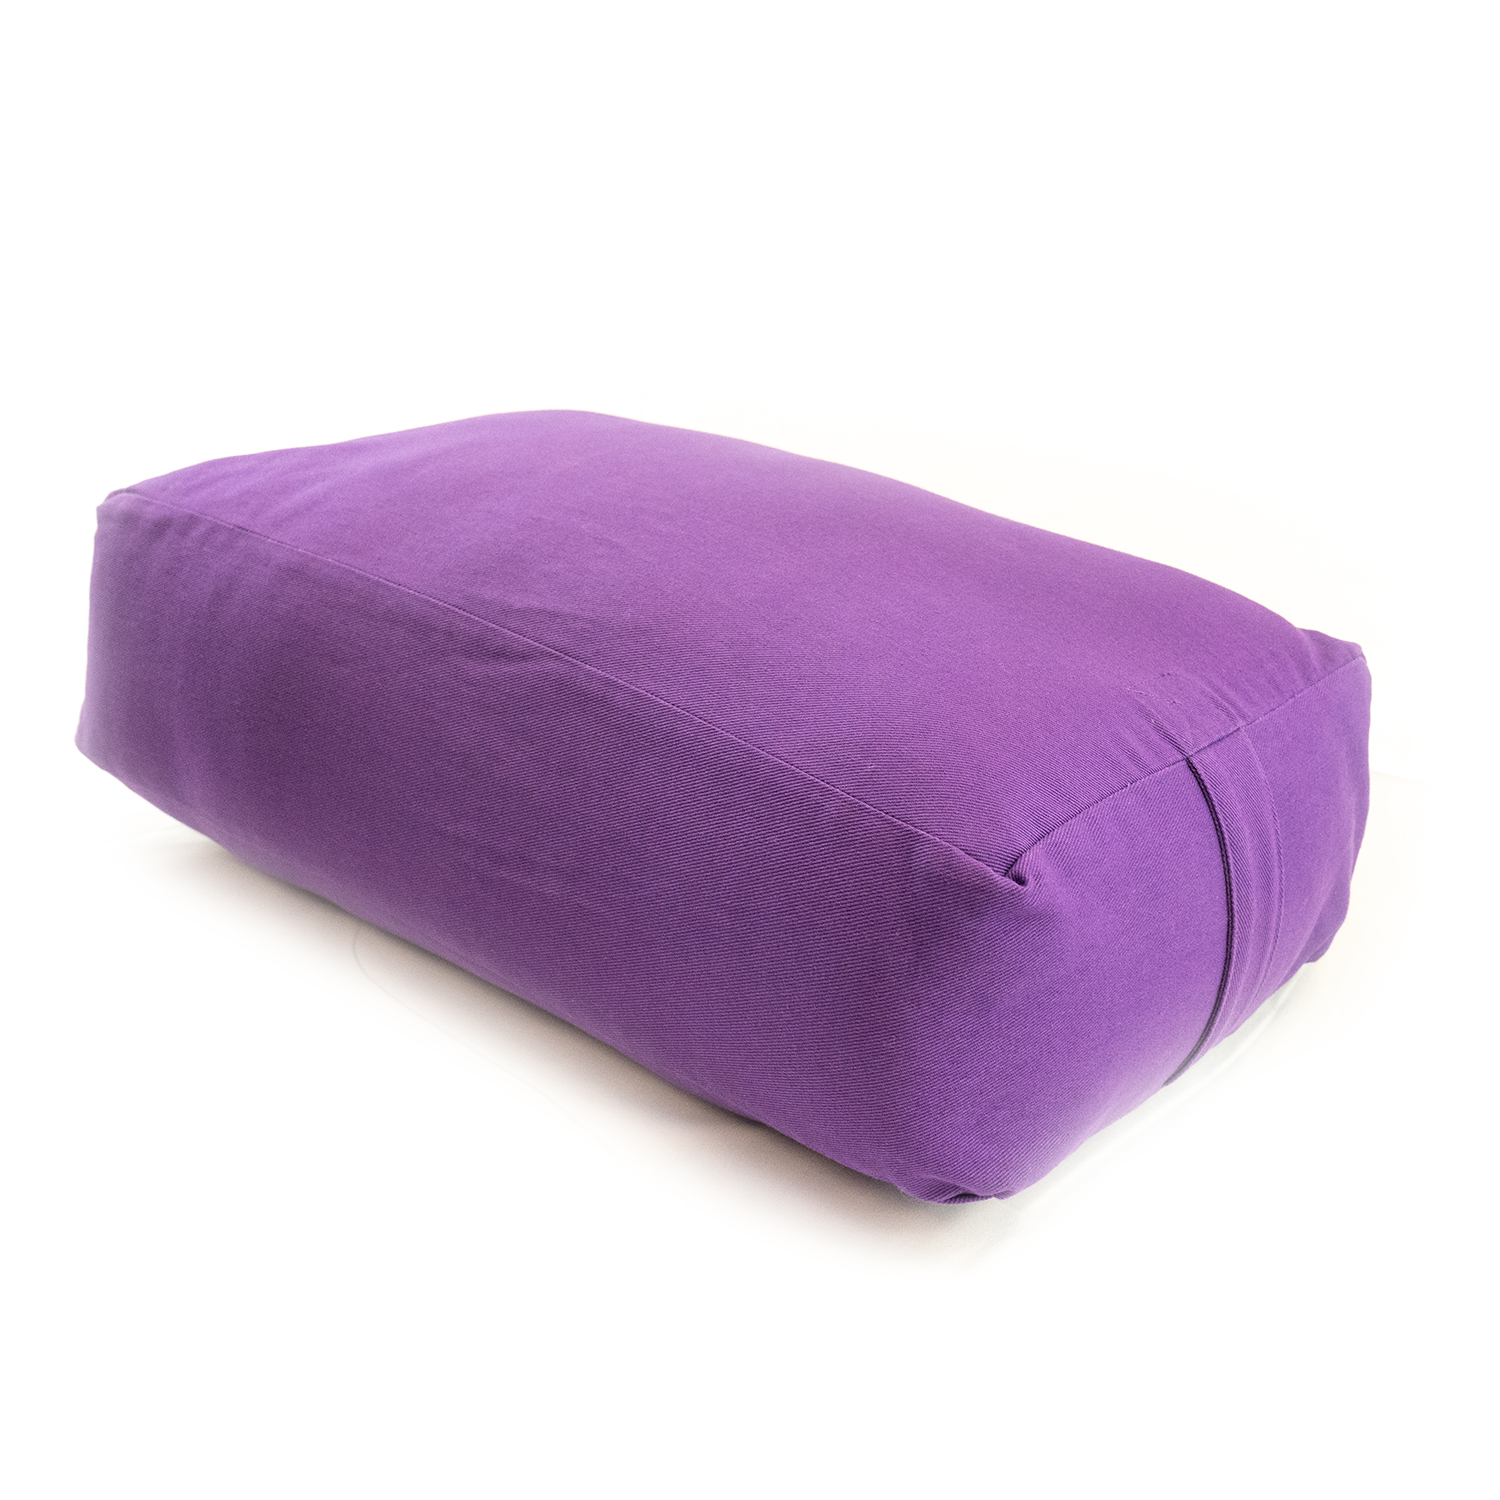 MaxSupport Deluxe Rectangular Cotton Yoga Bolster